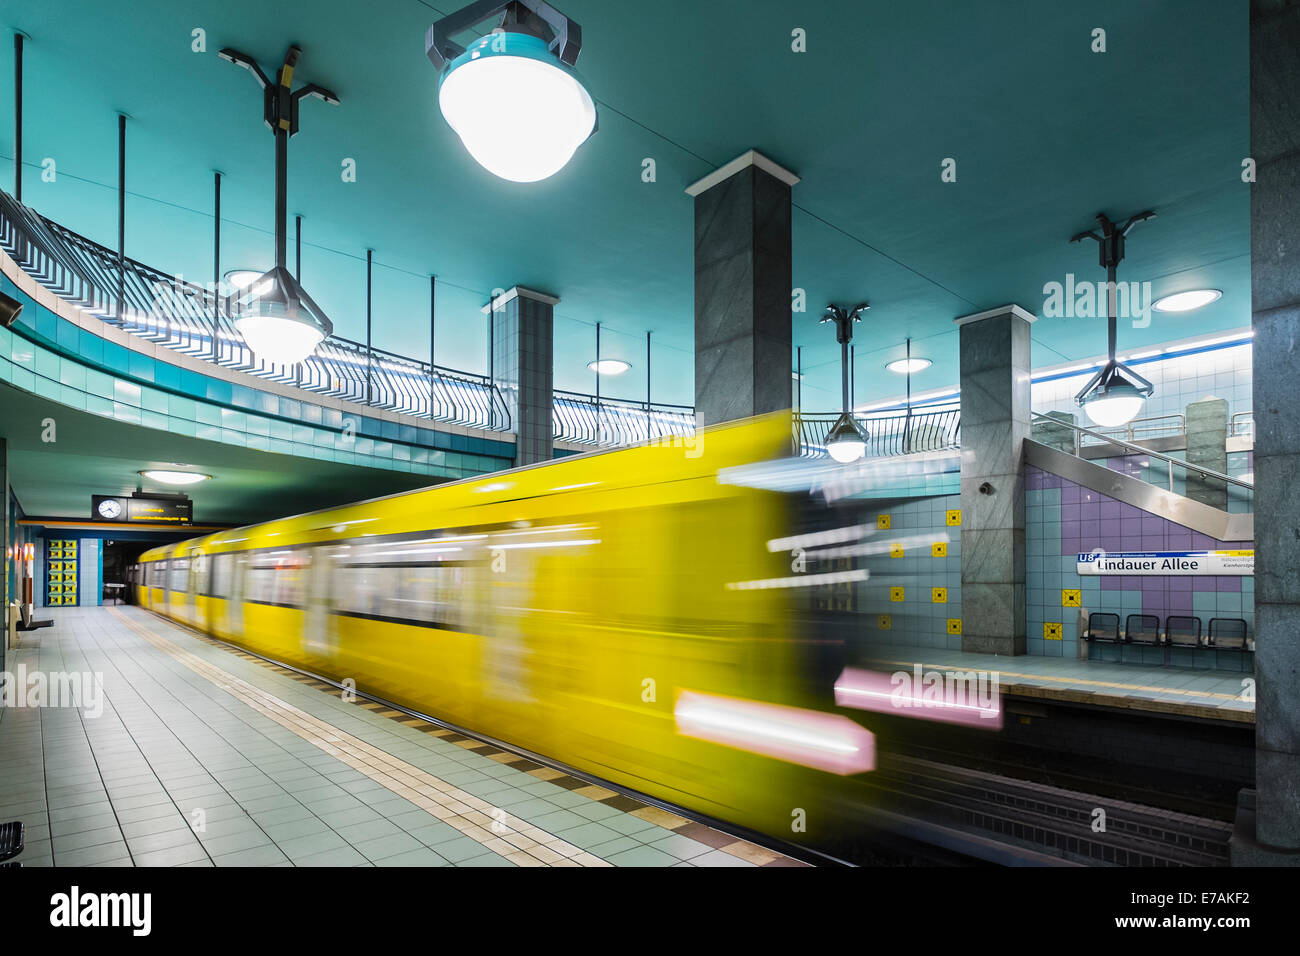 train at platform at Lindauer Allee subway station in Berlin Germany - Stock Image